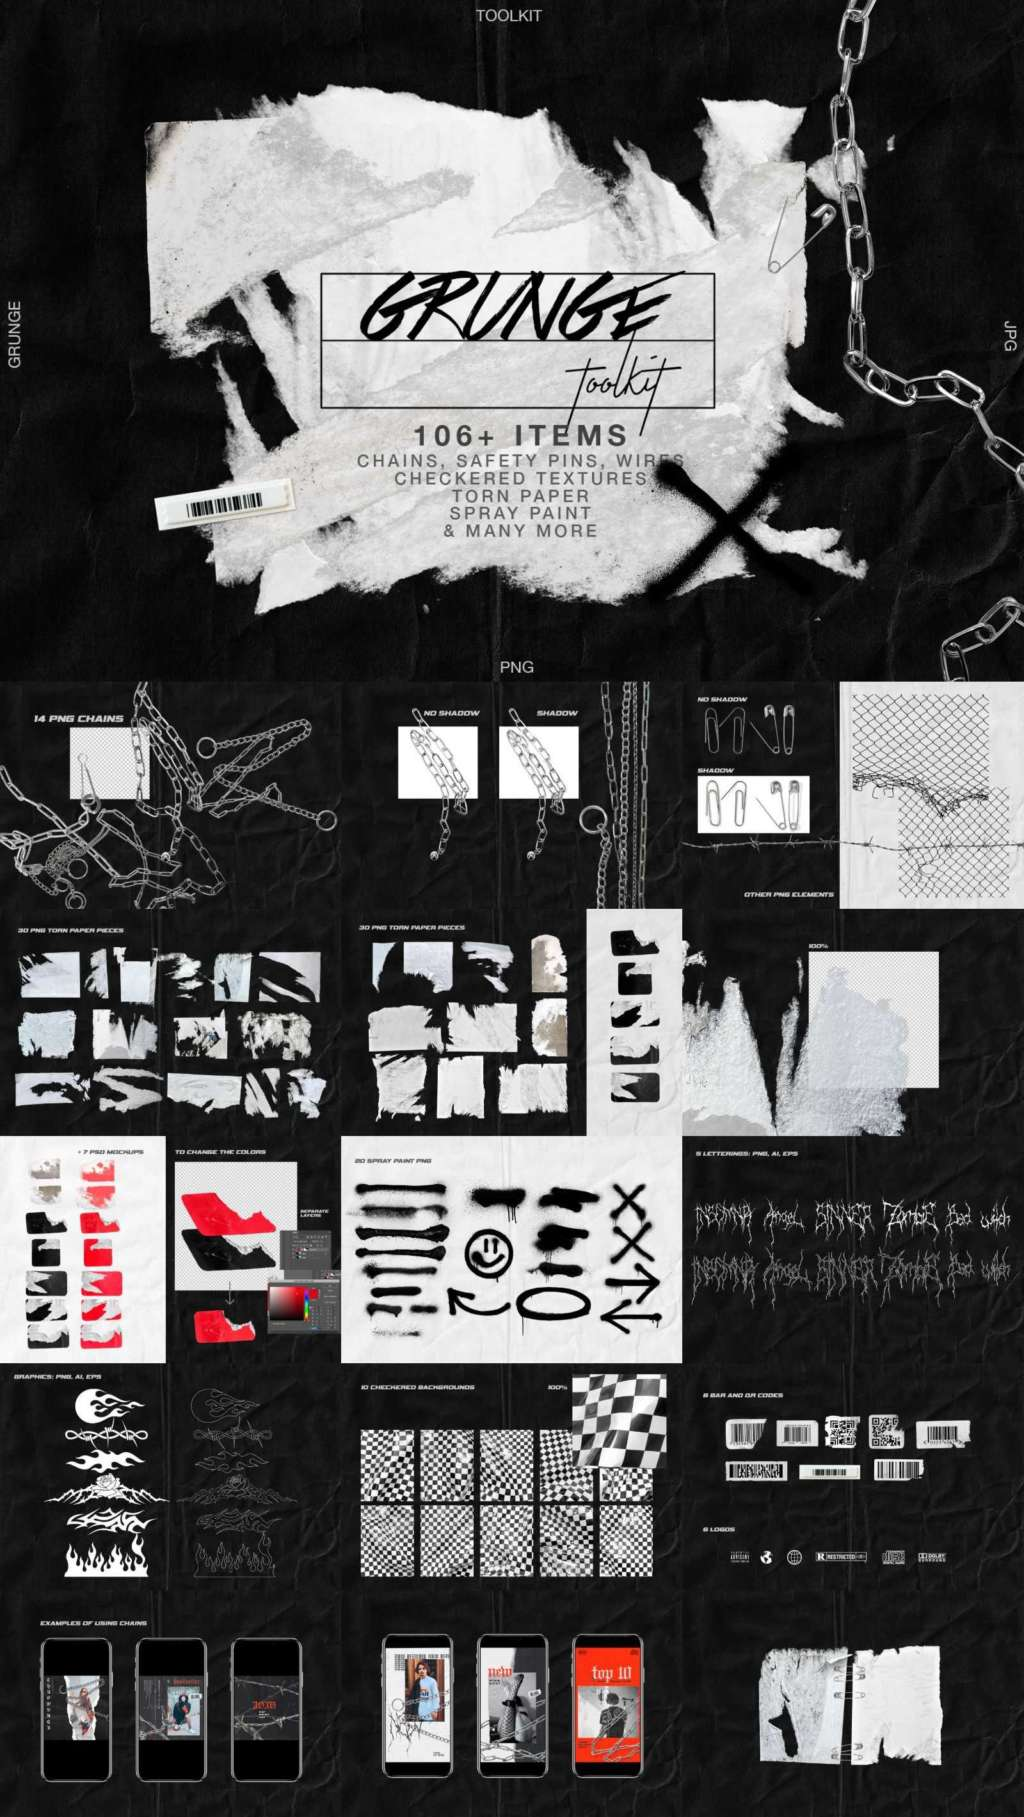 GRUNGE ARTISTIC TOOLKIT TORN PAPER & CHAINS